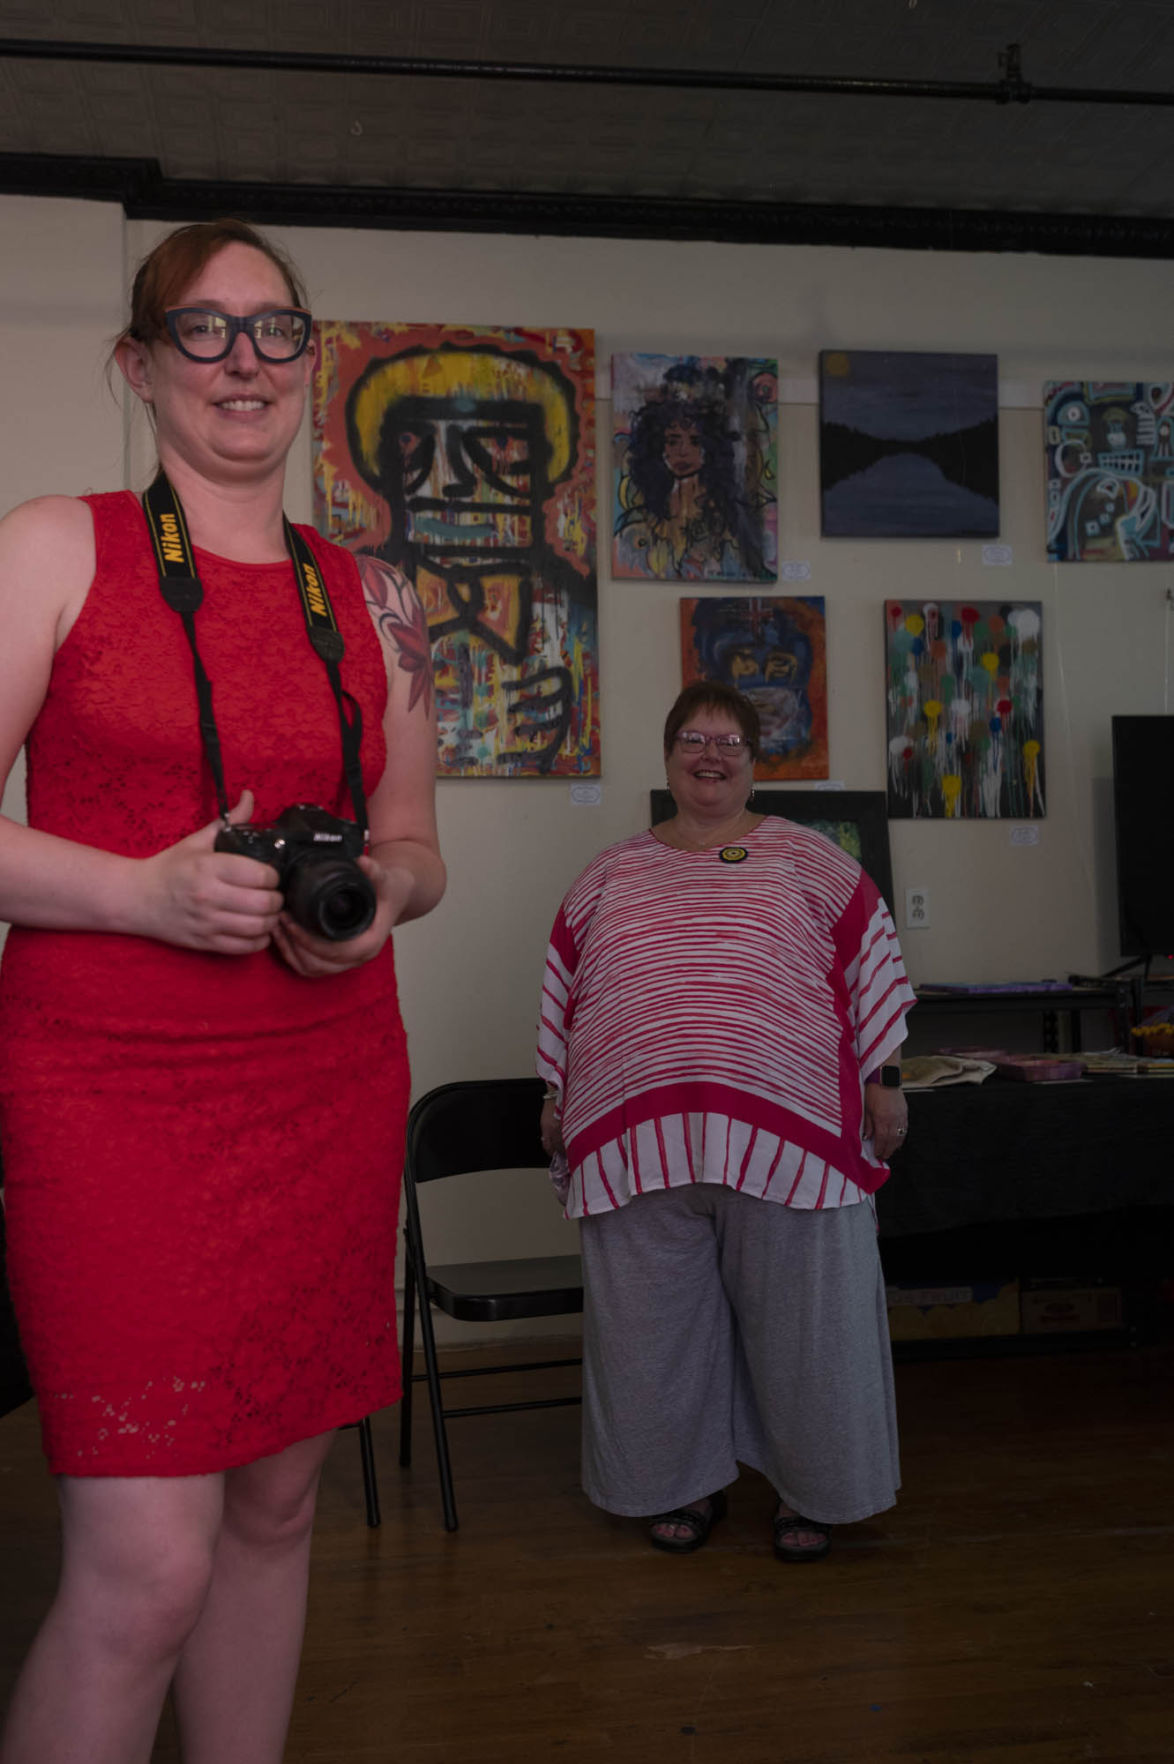 Random act of kindness replaces stolen camera